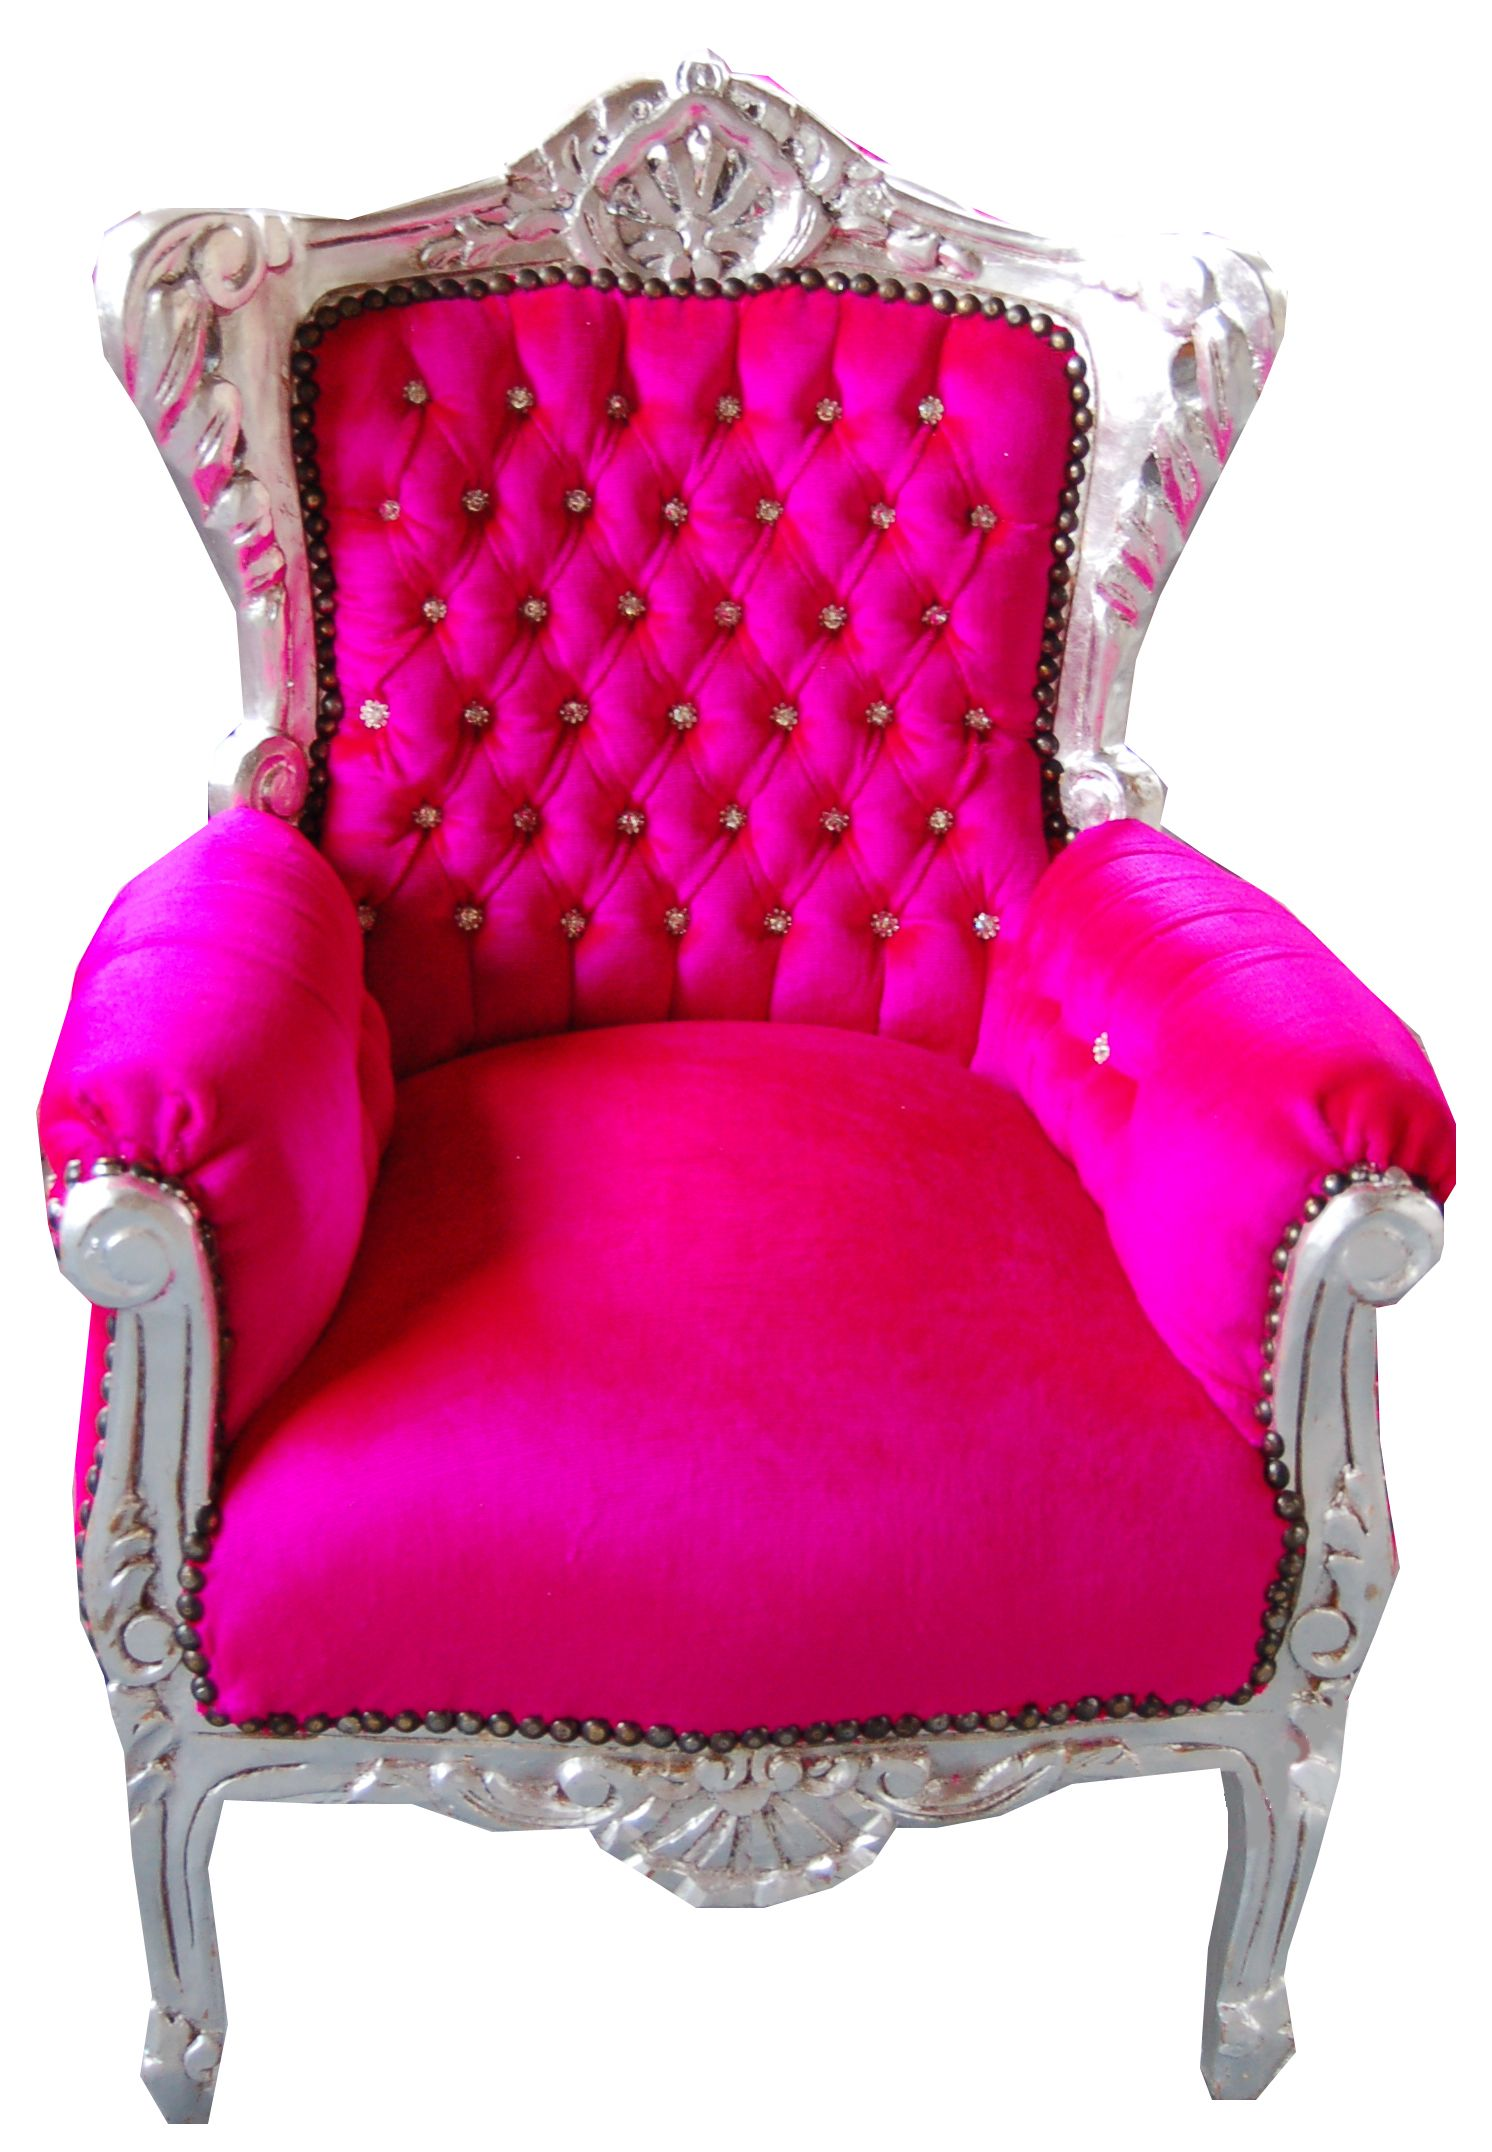 Pink Chairs For Bedrooms Hot Pink Room Designs Cool Chairs For Cool Kids By